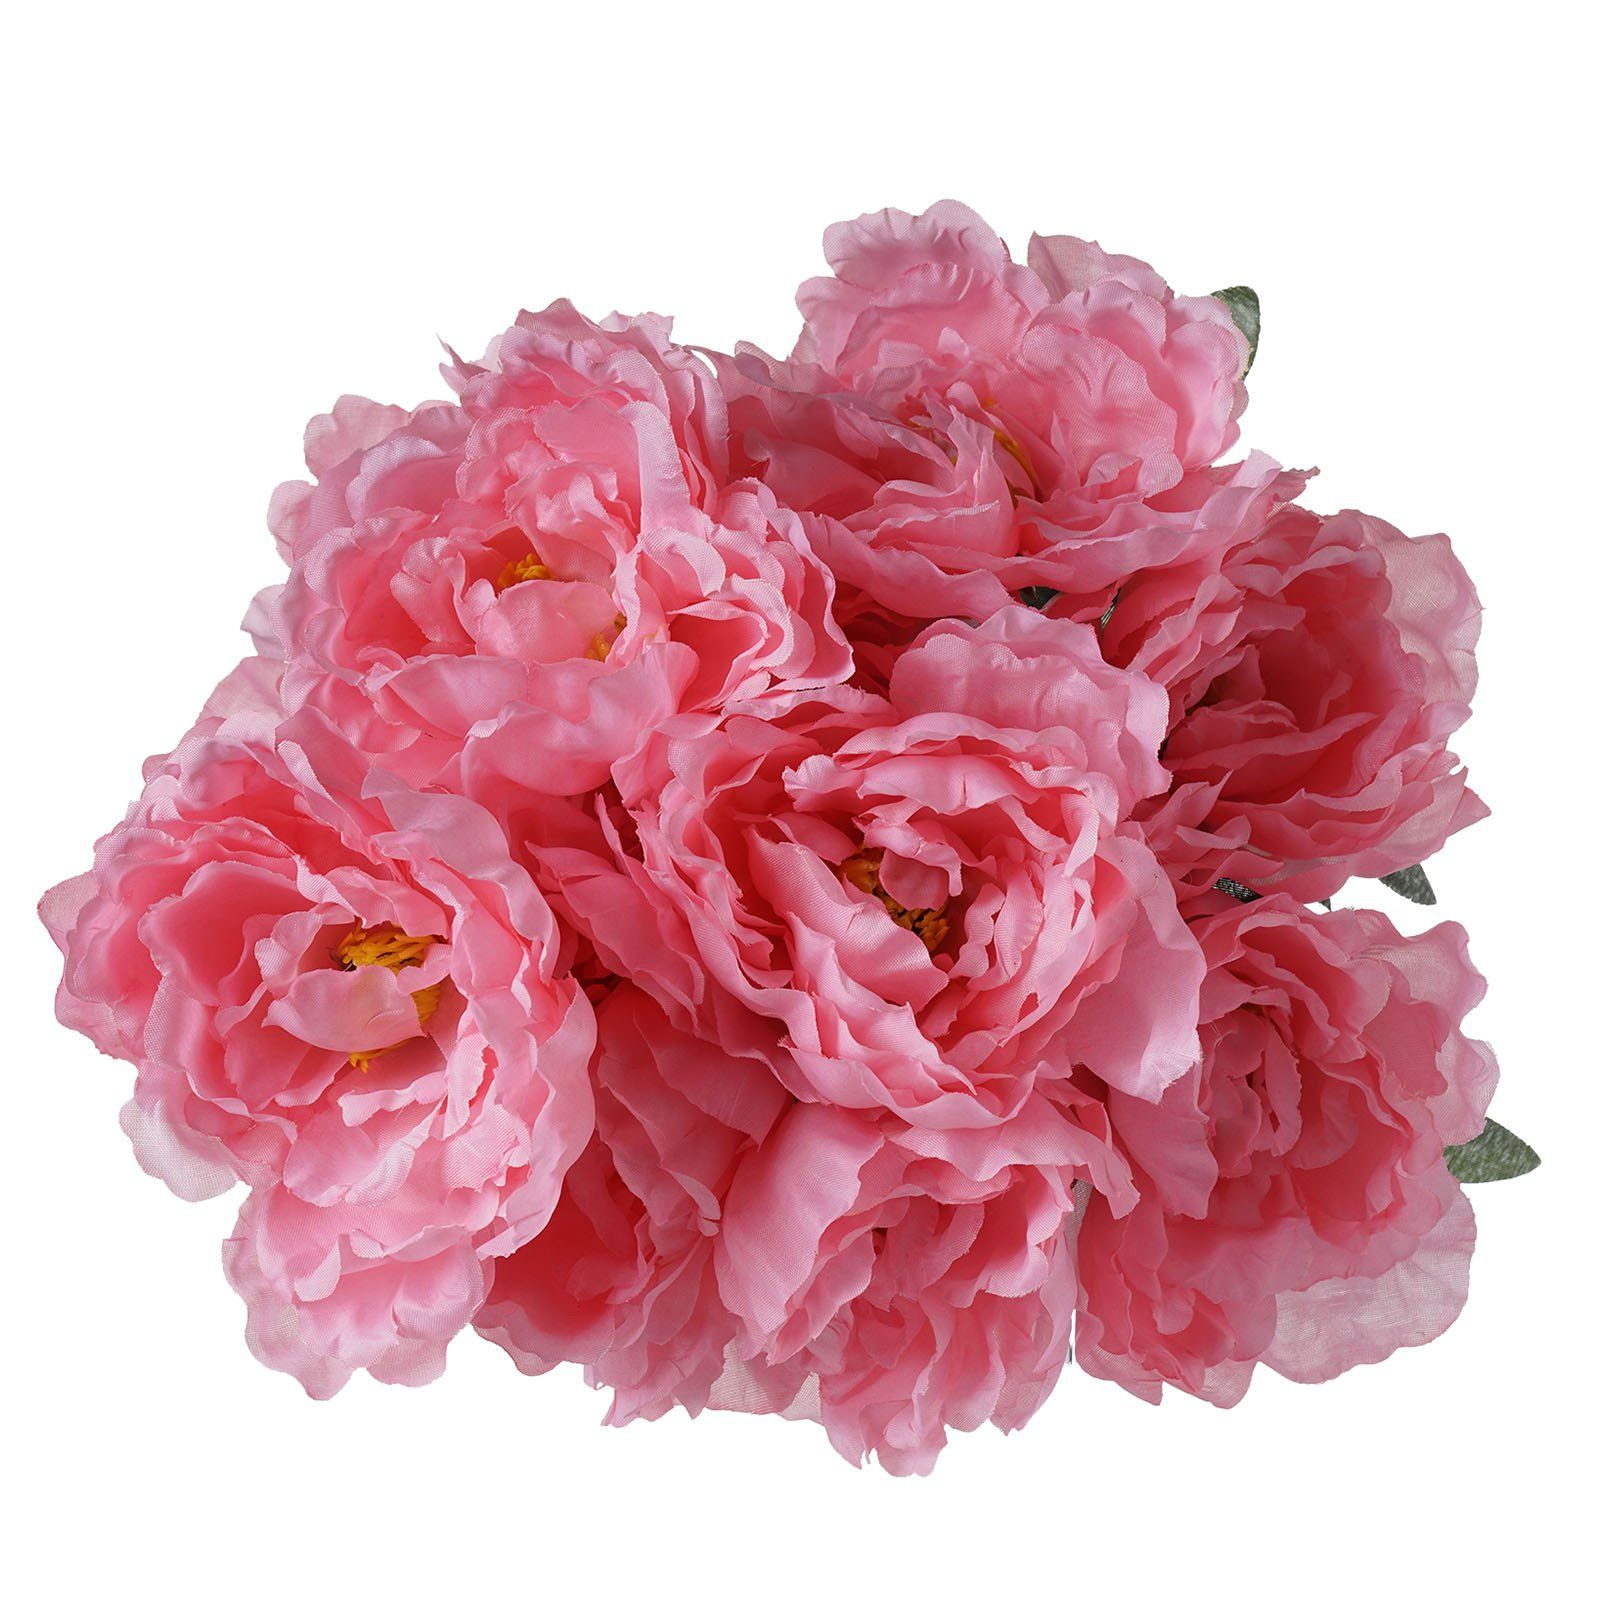 4 Pack Pink Artificial Peony Flower Bridal Bouquet | Pinterest ...